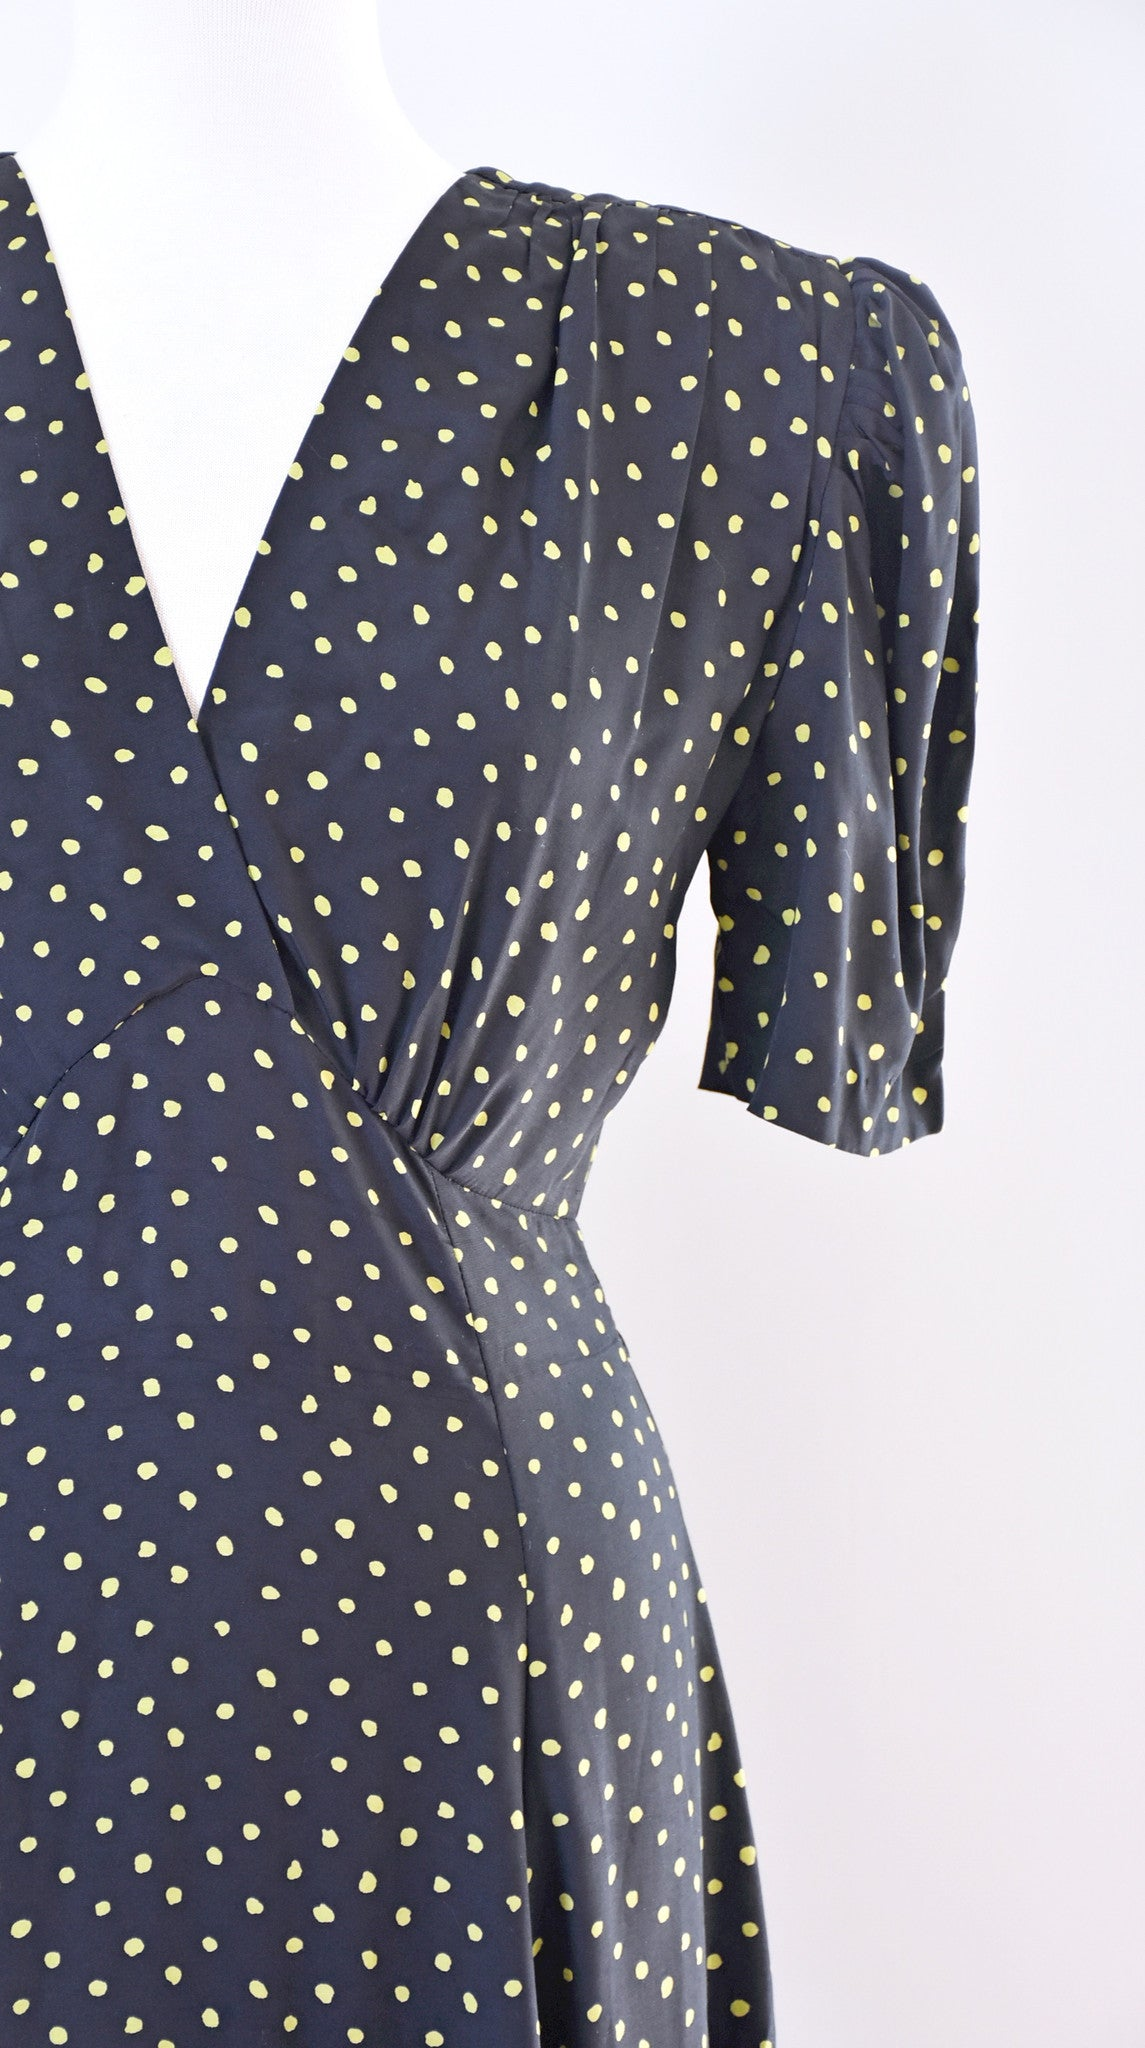 80s Polka Dot Rayon Dress